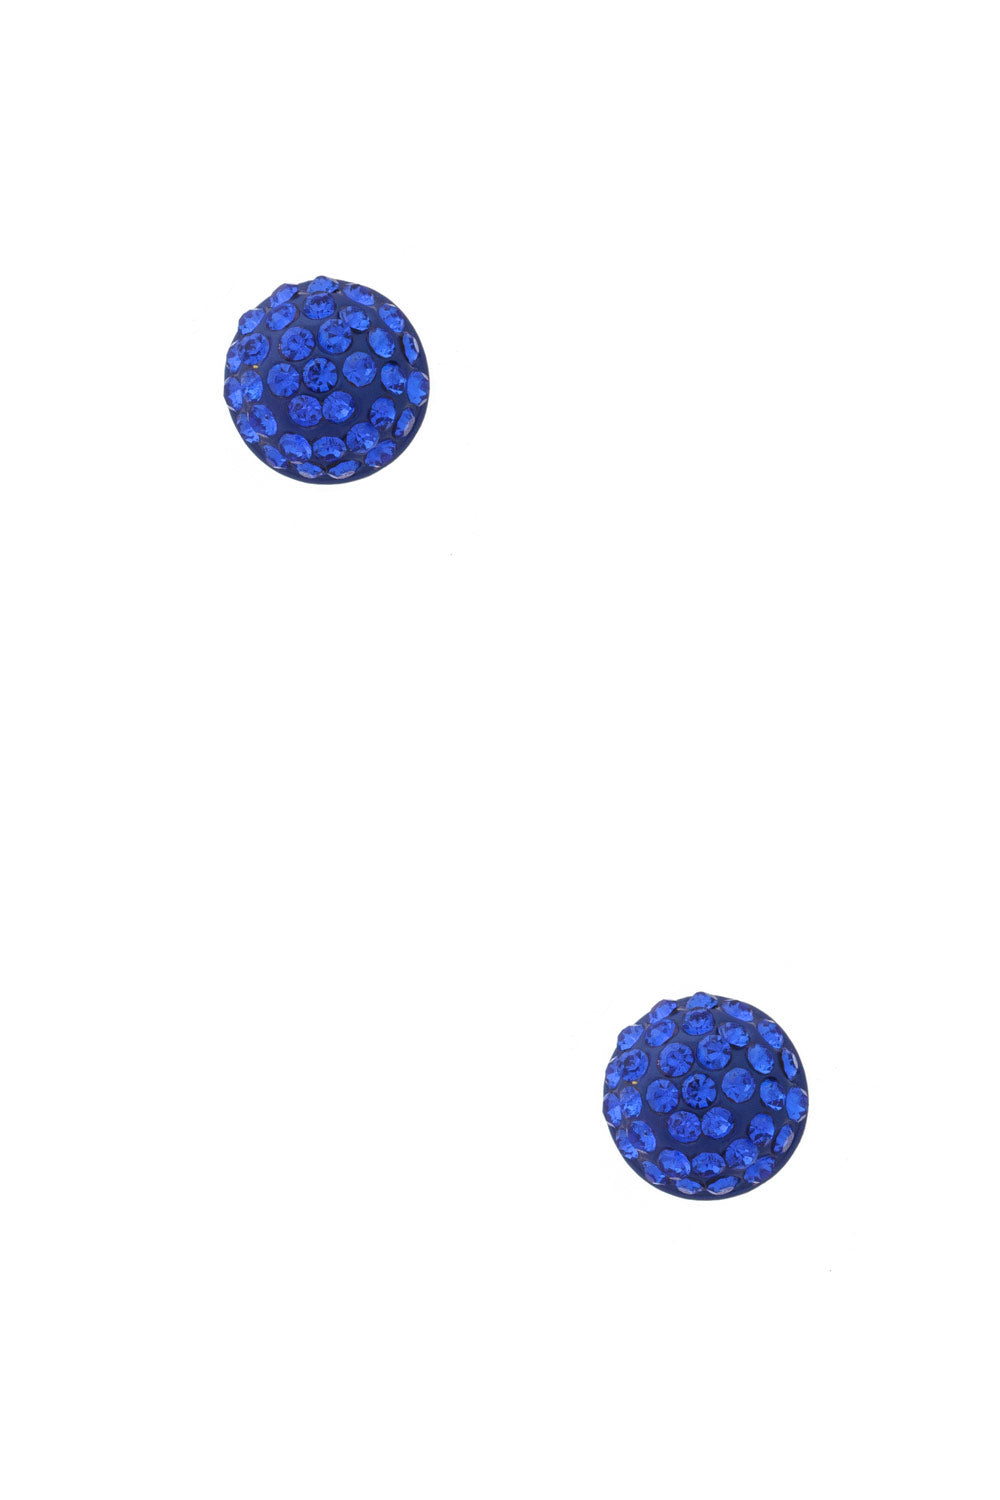 Type 4 Sapphire Gaze Earrings